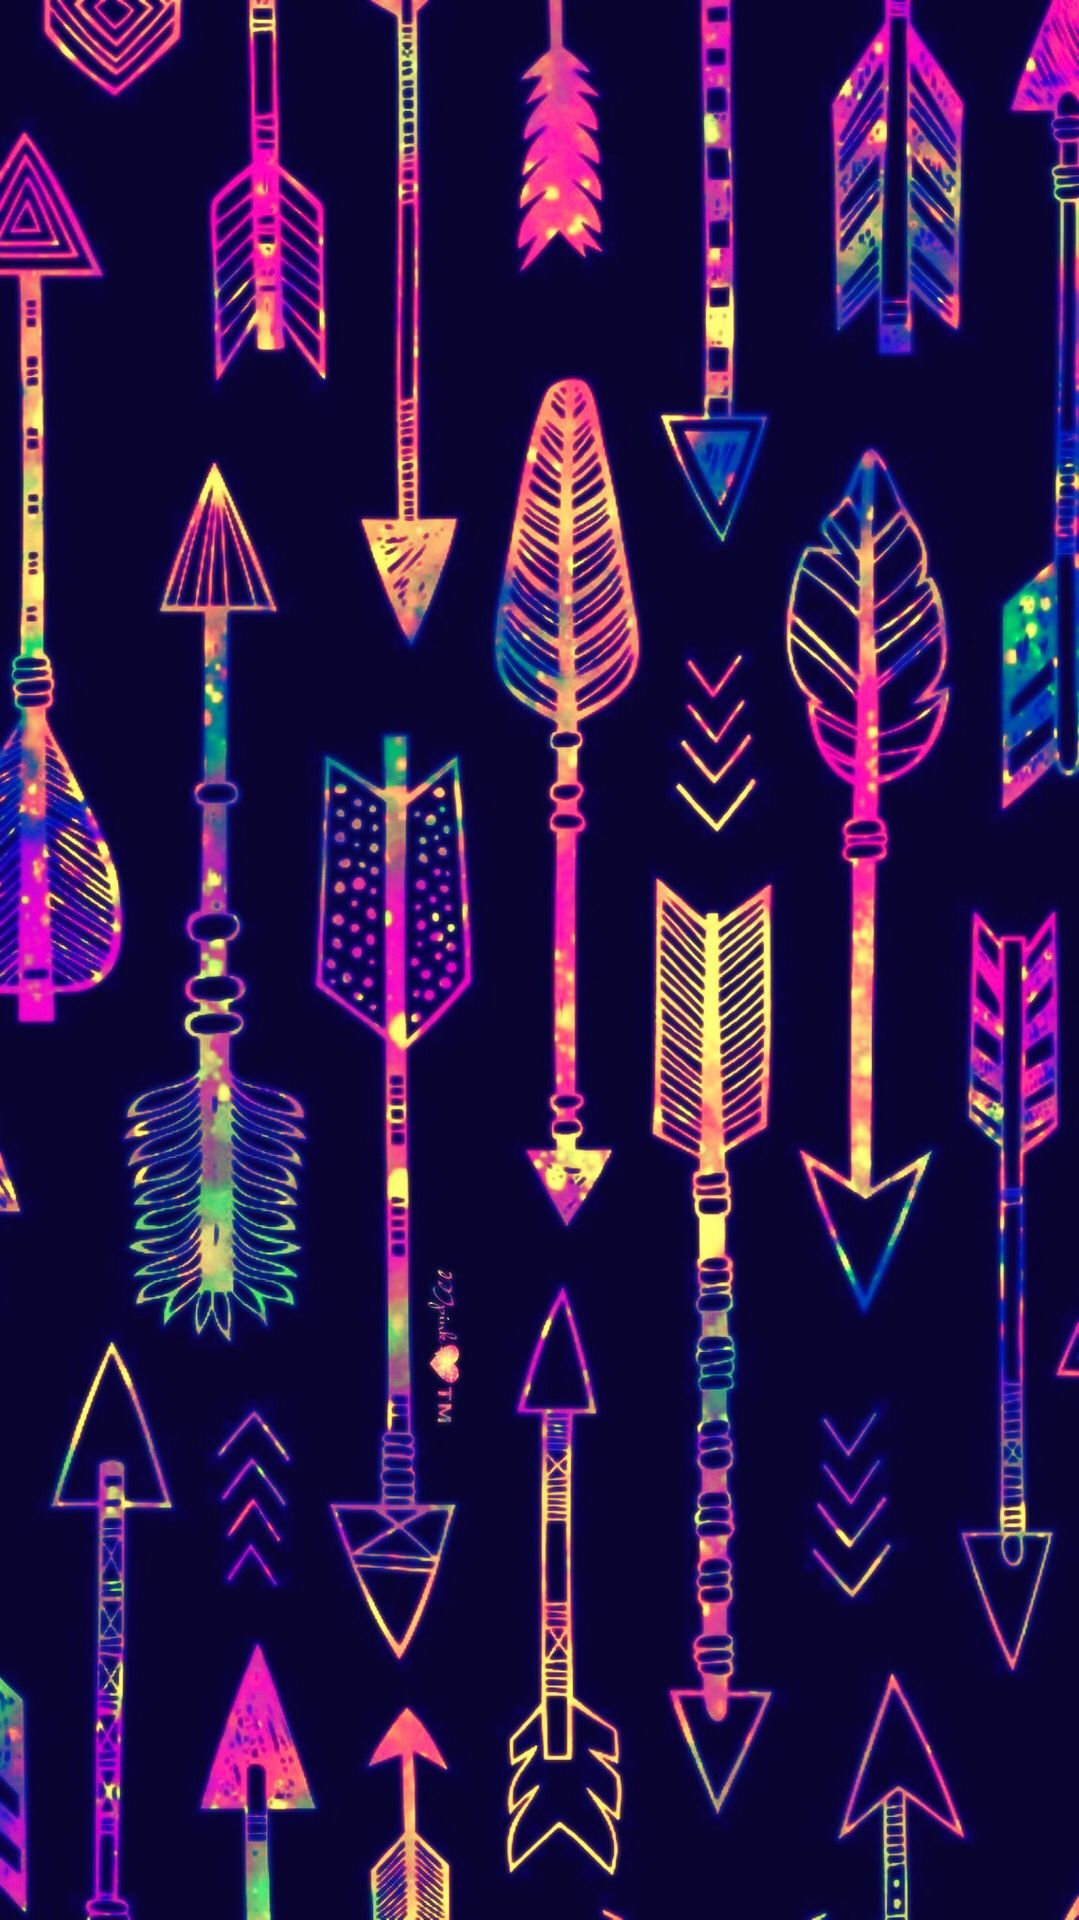 Neon Arrows Galaxy Wallpaper Androidwallpaper Girly Pattern